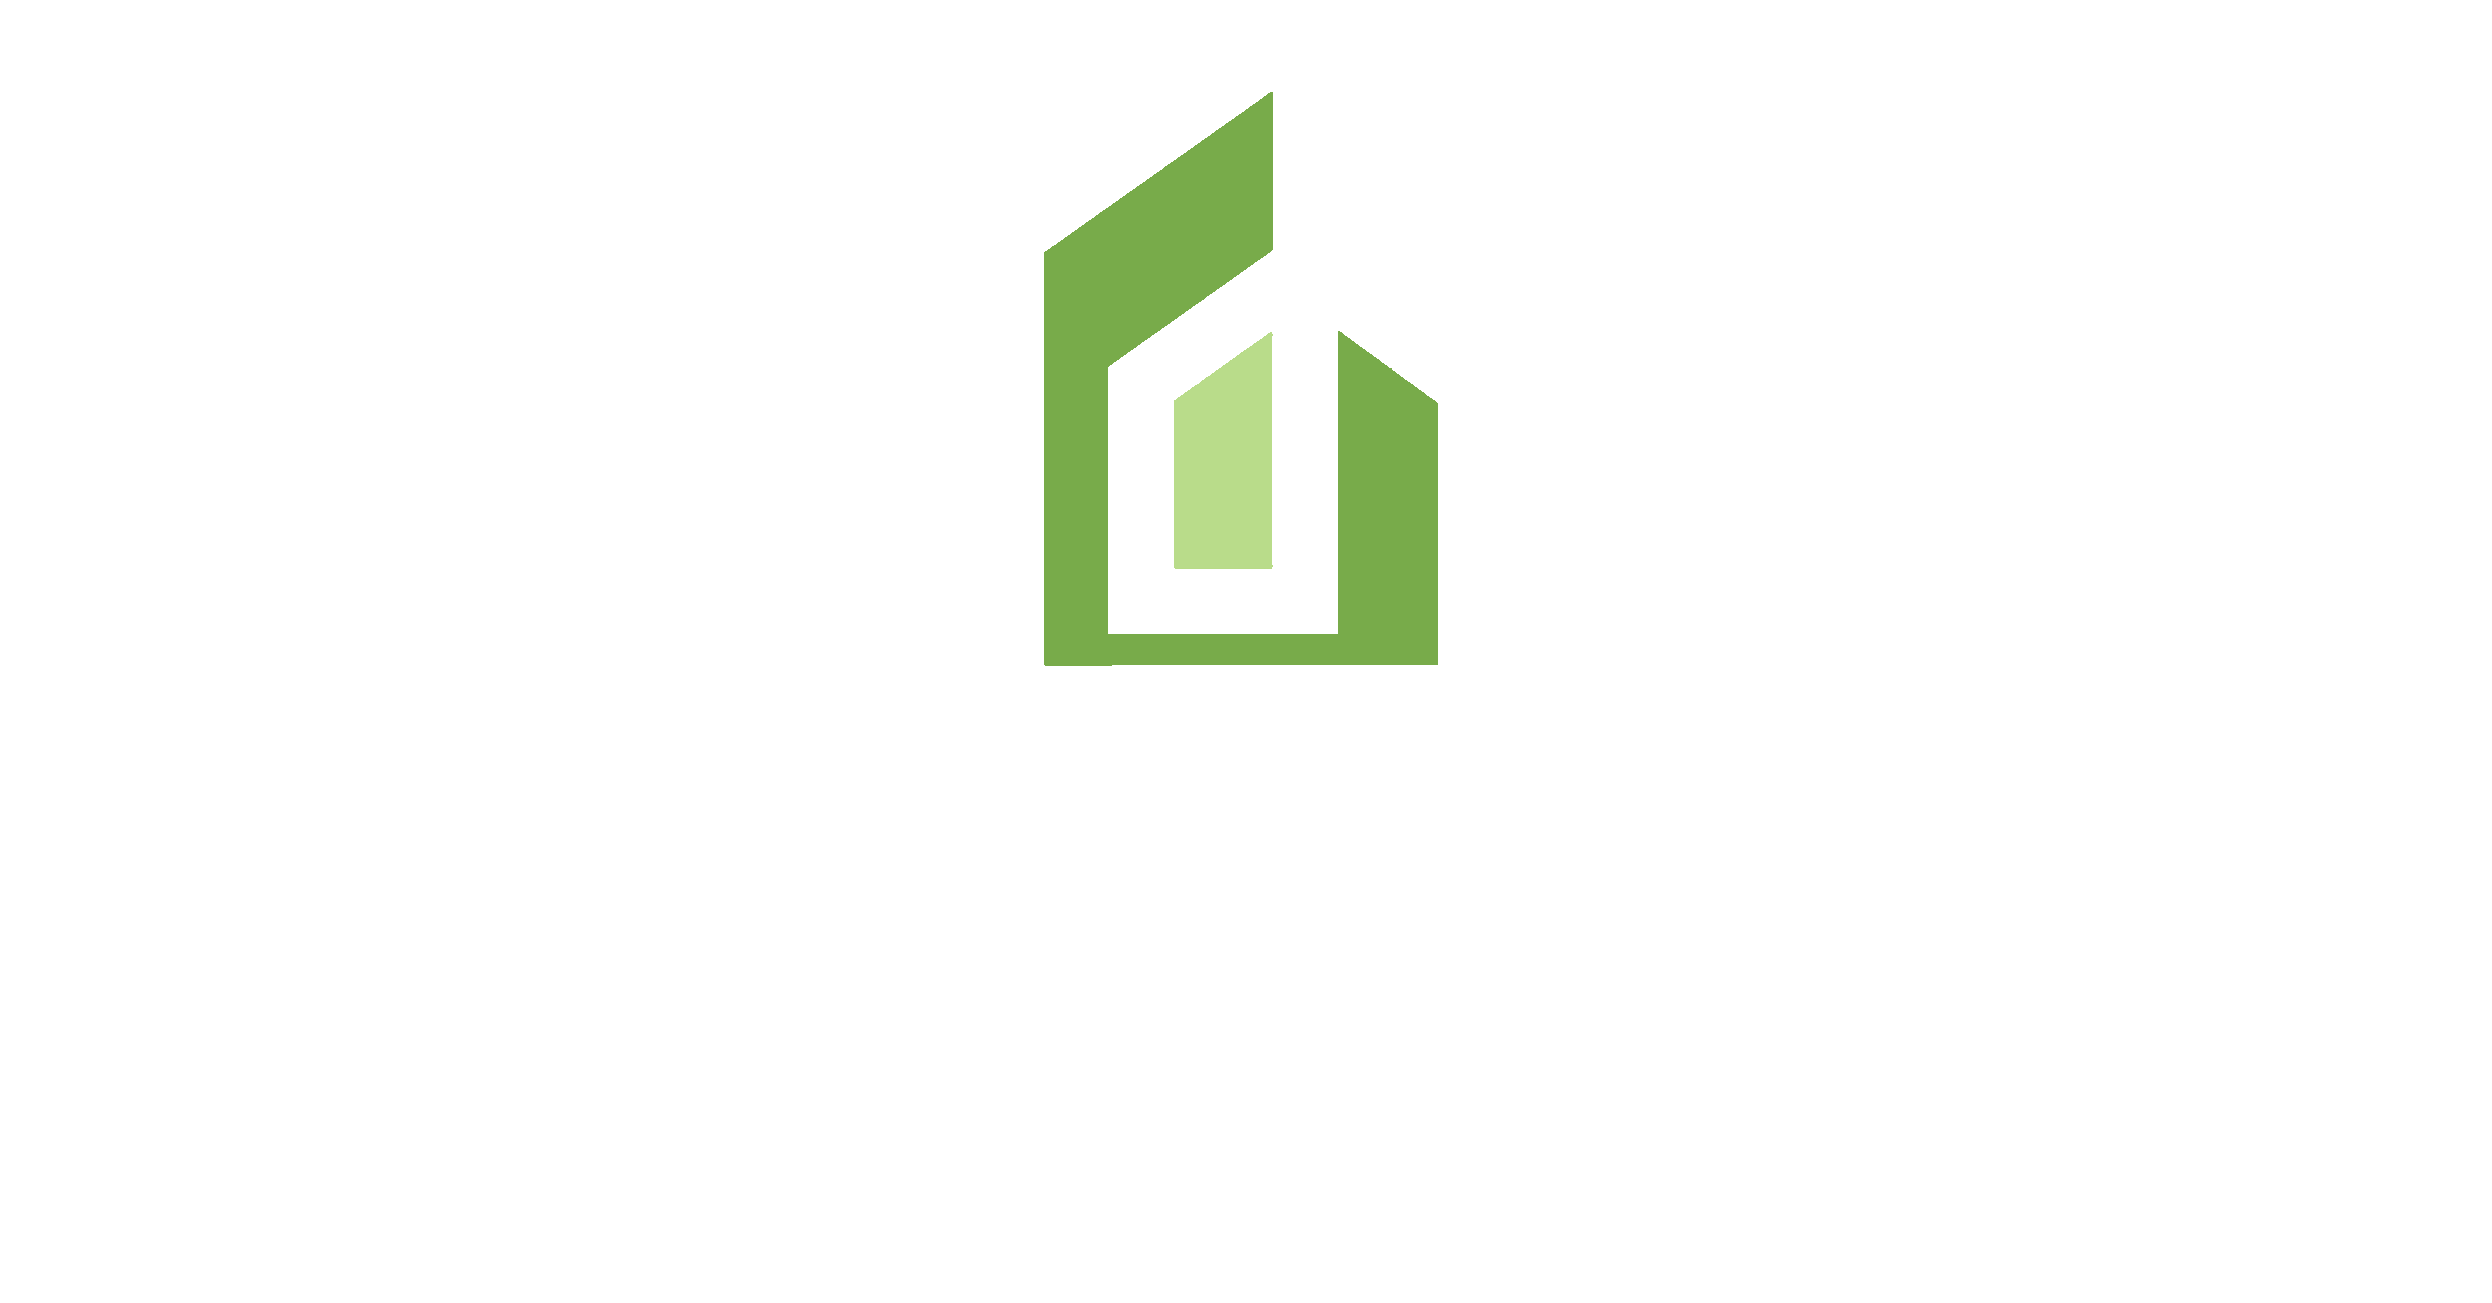 The Luxembourg Housing Company